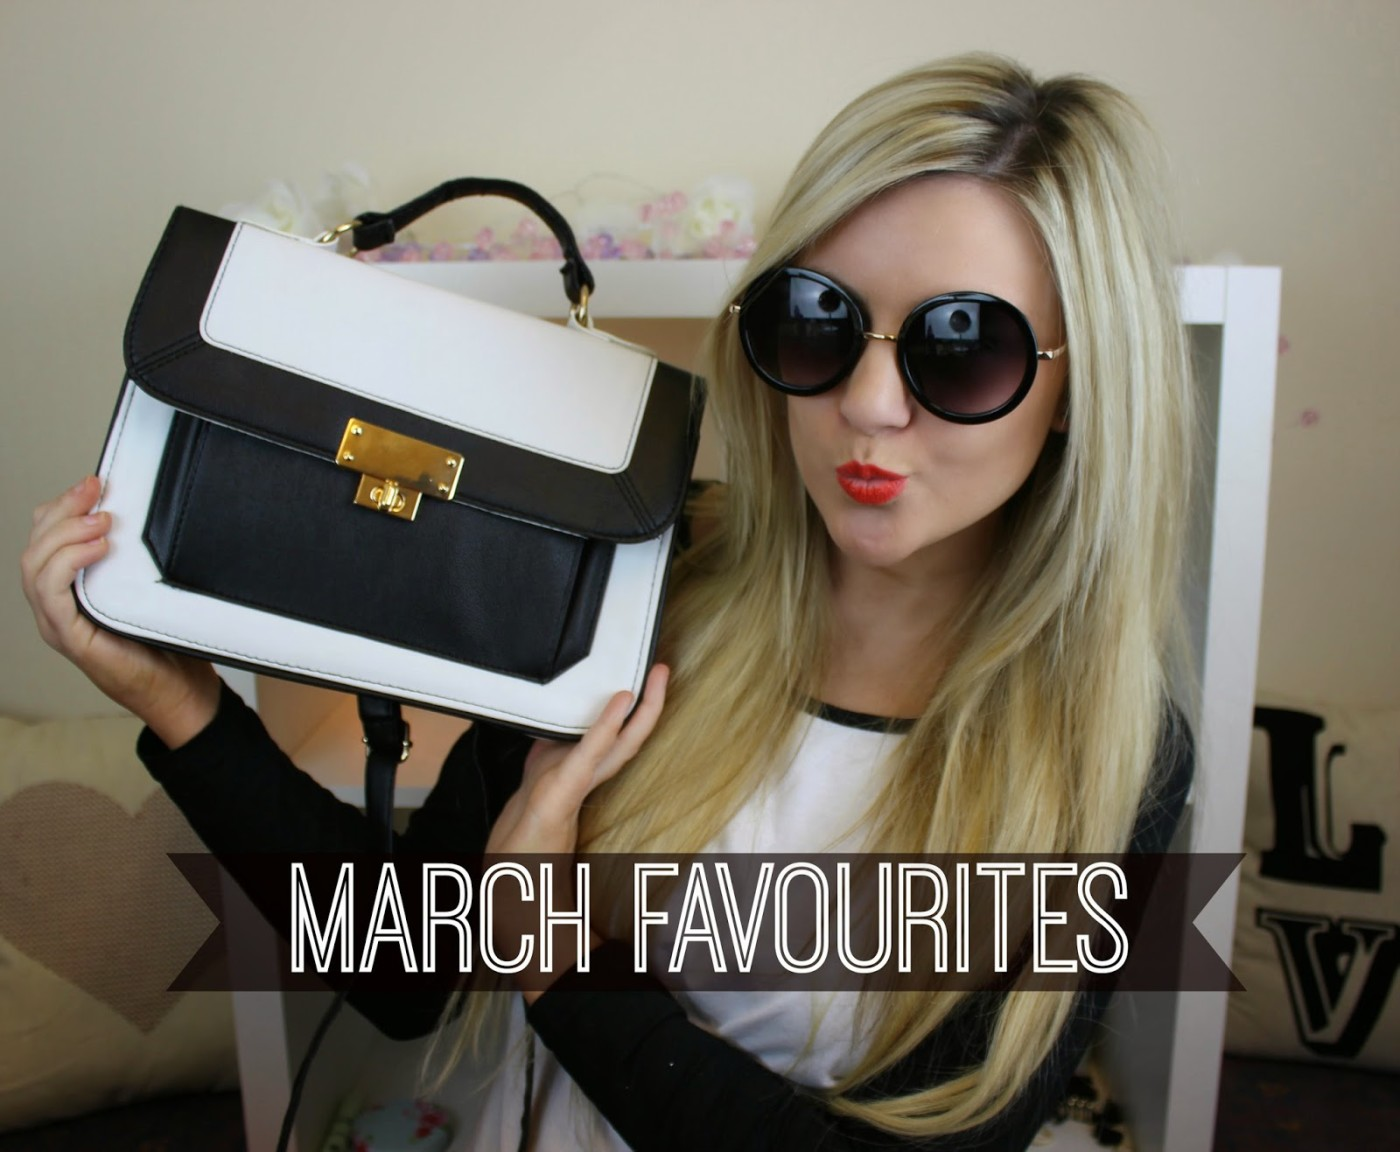 monthly favourites, march favourites, 2014 favourites, march 2014 favourites, through chelsea's eyes, youtube, british youtubers,